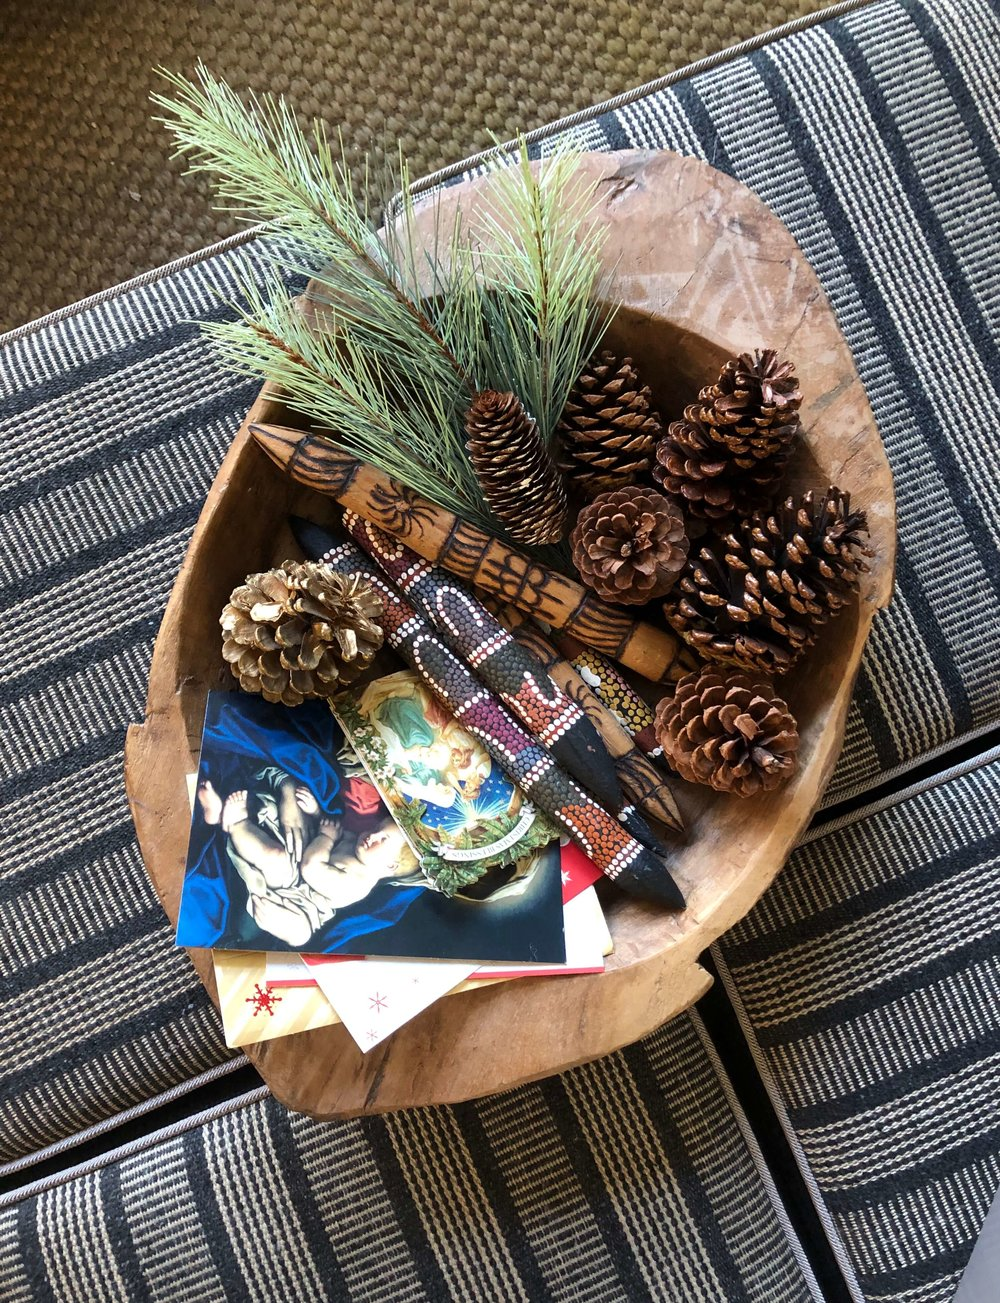 Christmas home tour - pinecones and cards in rustic wooden bowl on ottomans